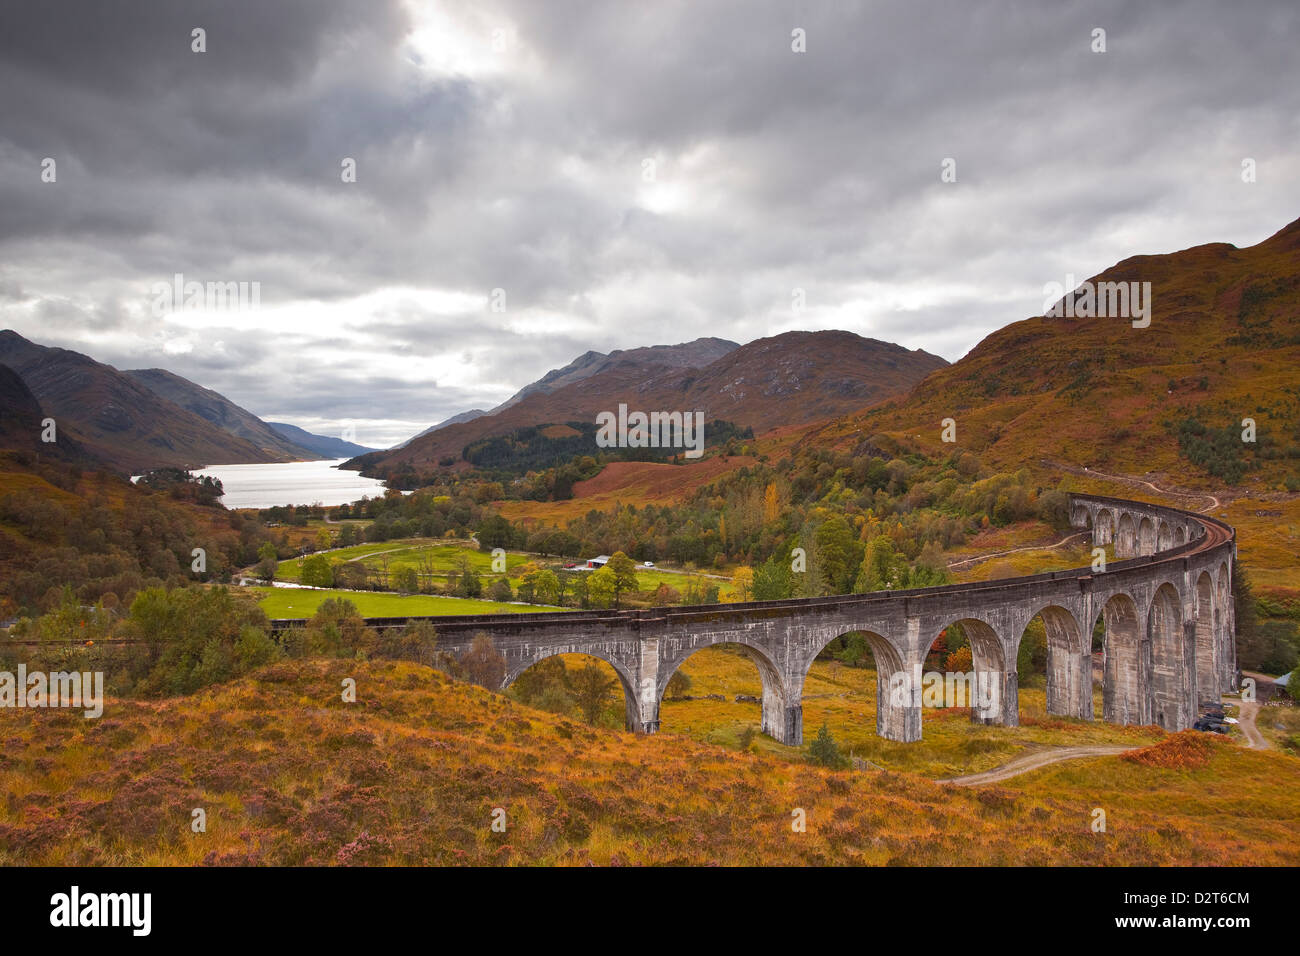 The magnificent Glenfinnan Viaduct in the Scottish Highlands, Argyll and Bute, Scotland, United Kingdom, Europe - Stock Image